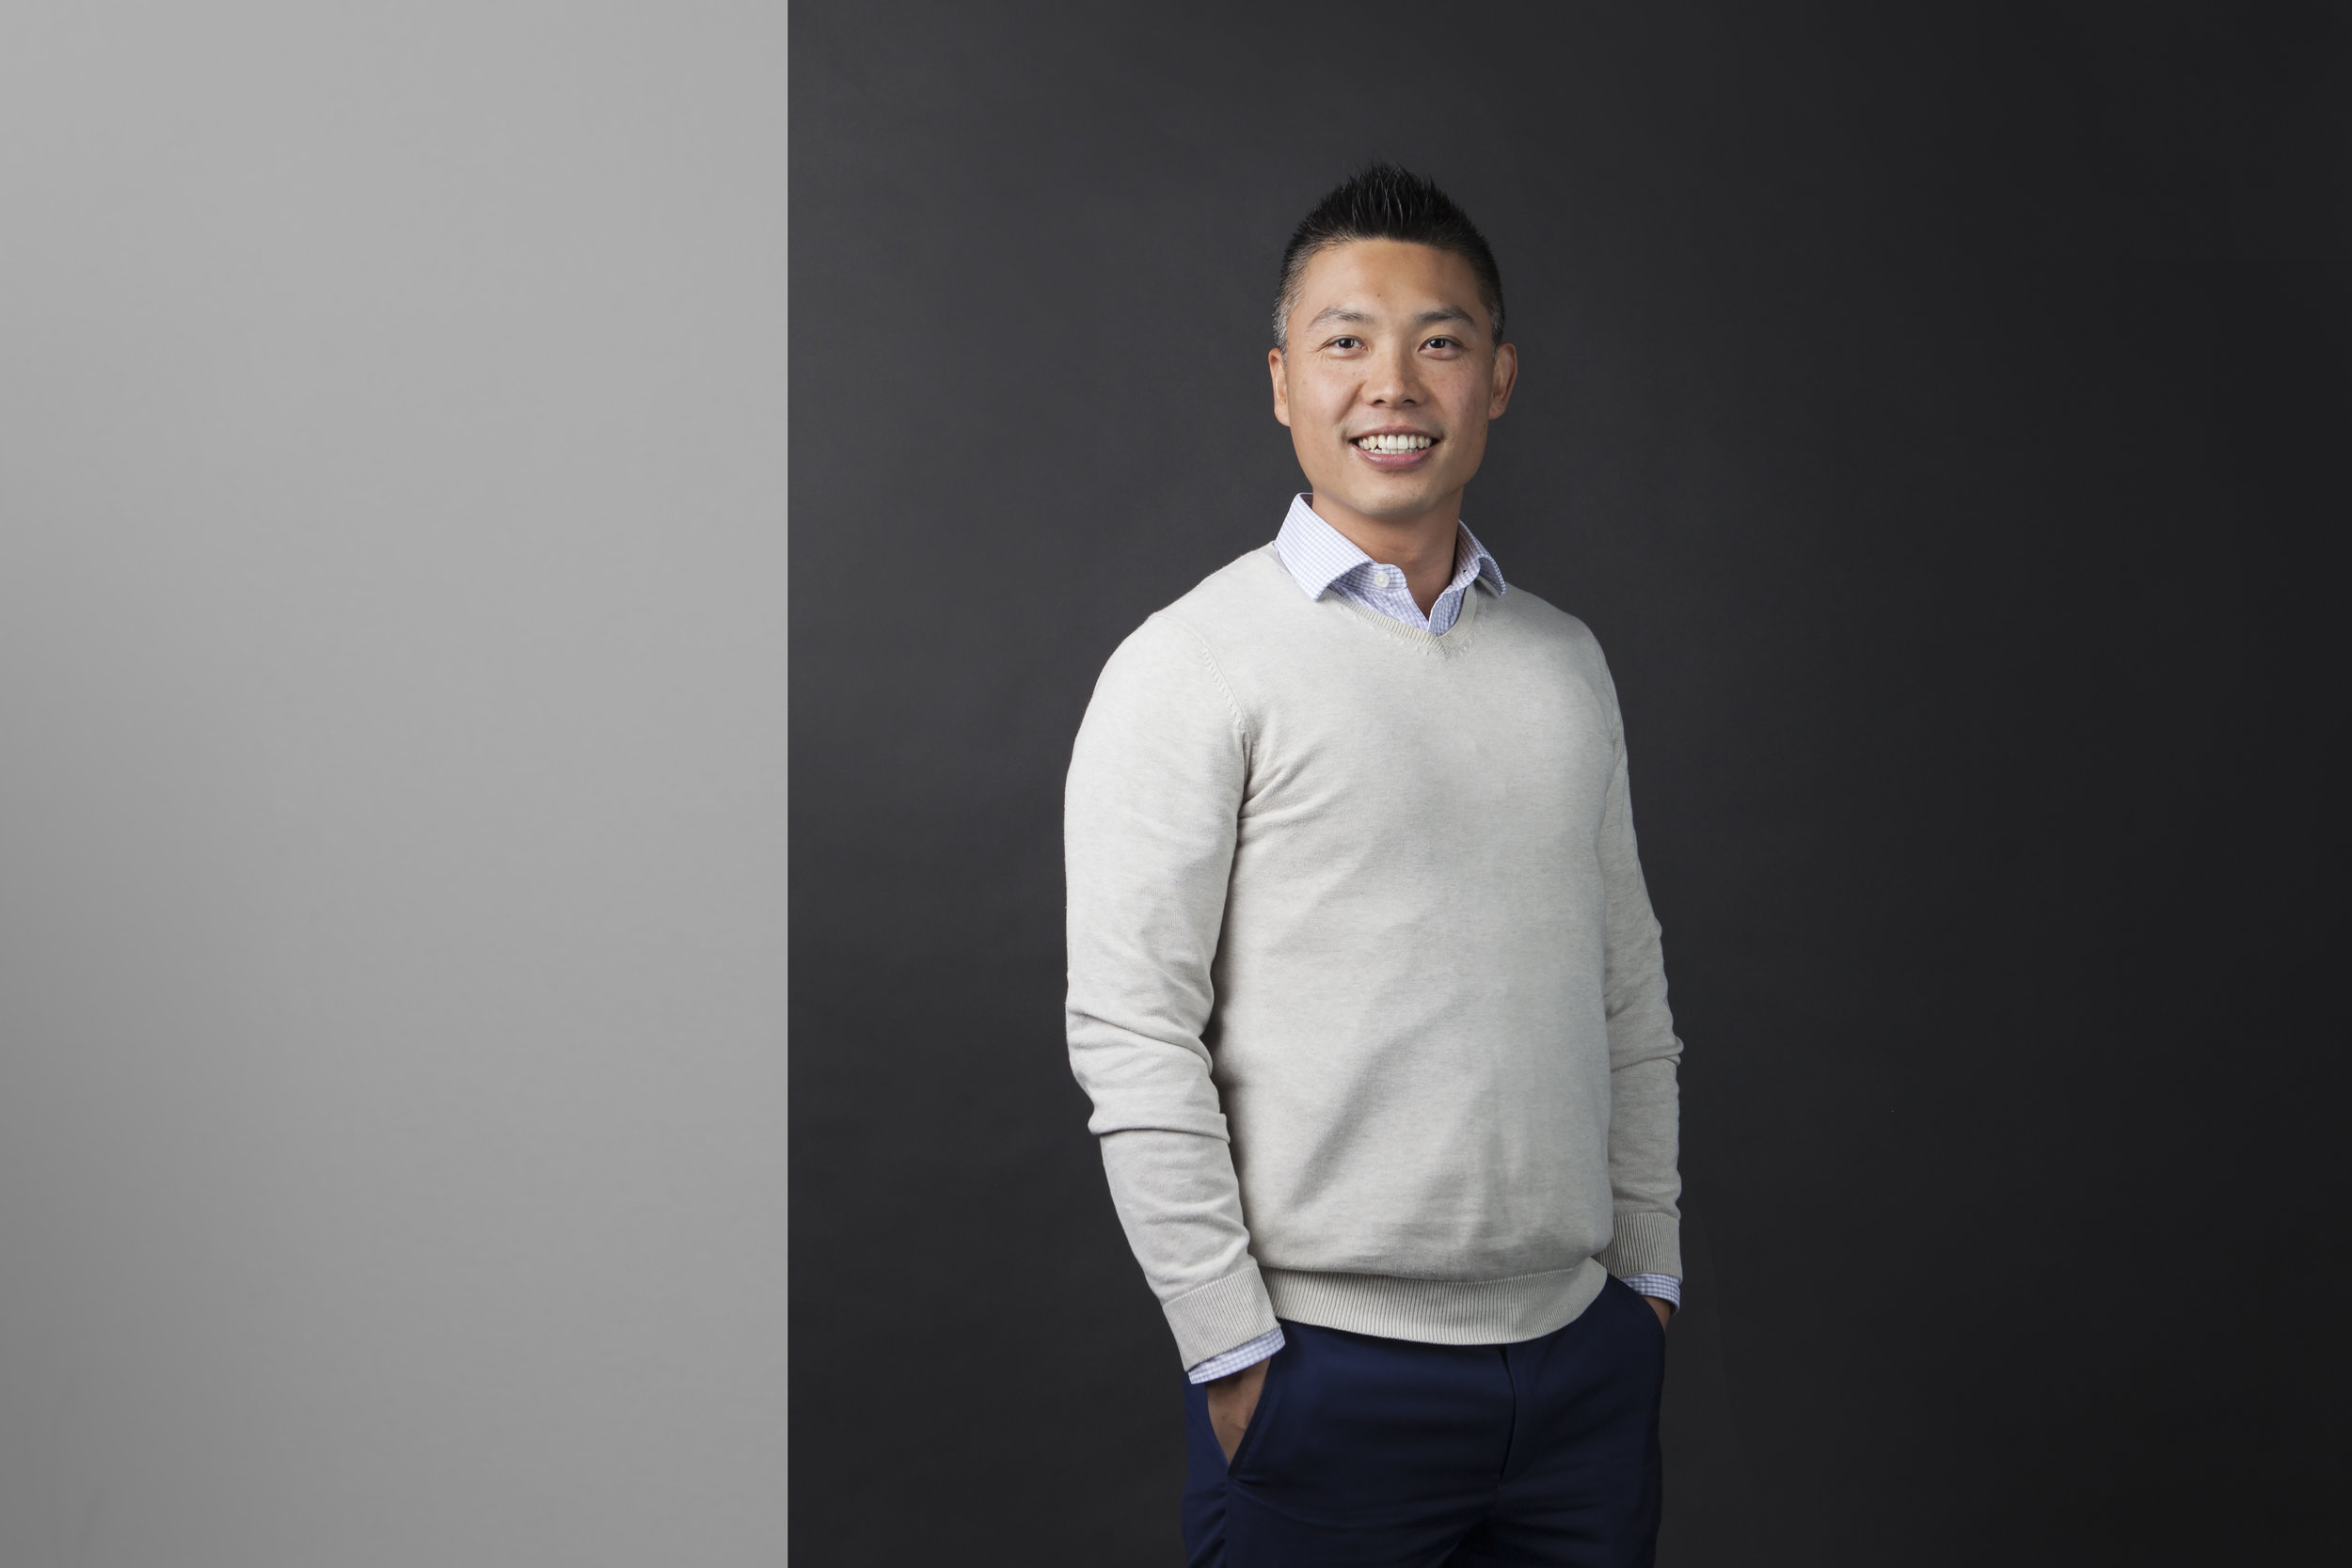 Bernie Chin - Finance Manager at OneVentures, leading Australian Venture Capital firm